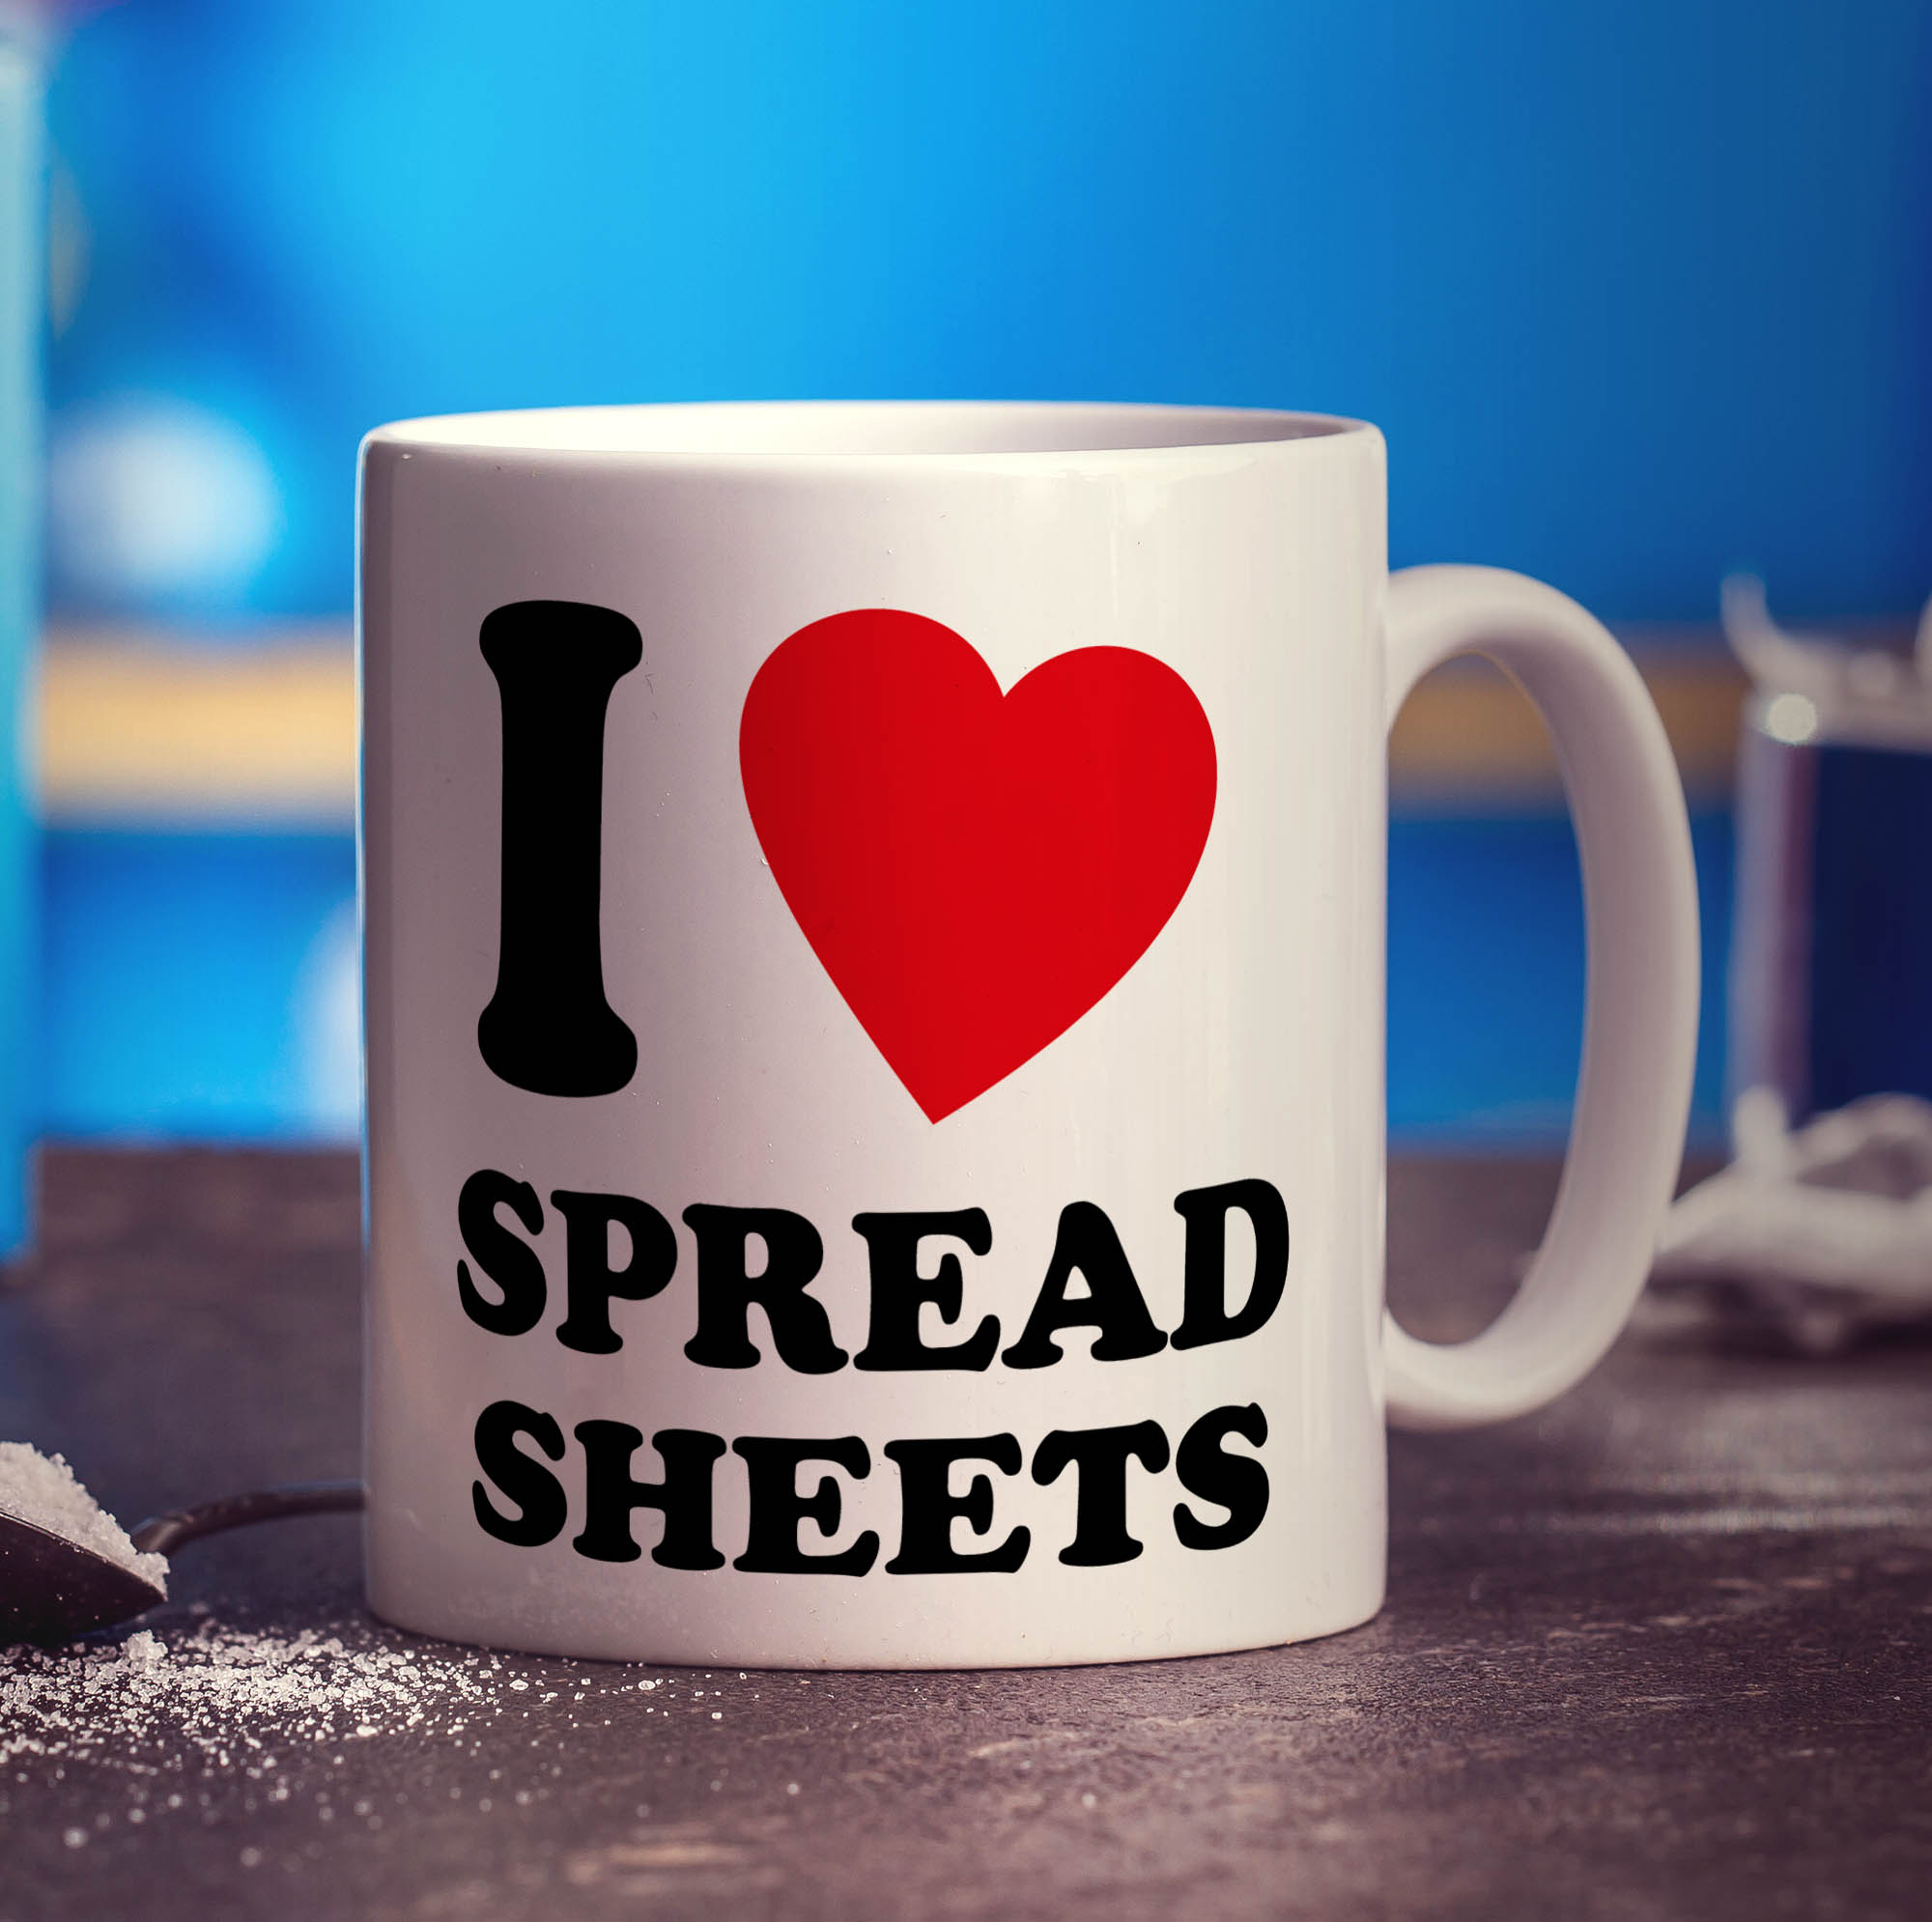 I Heart Spreadsheets Mug   Printster And I Heart Spreadsheets Mug